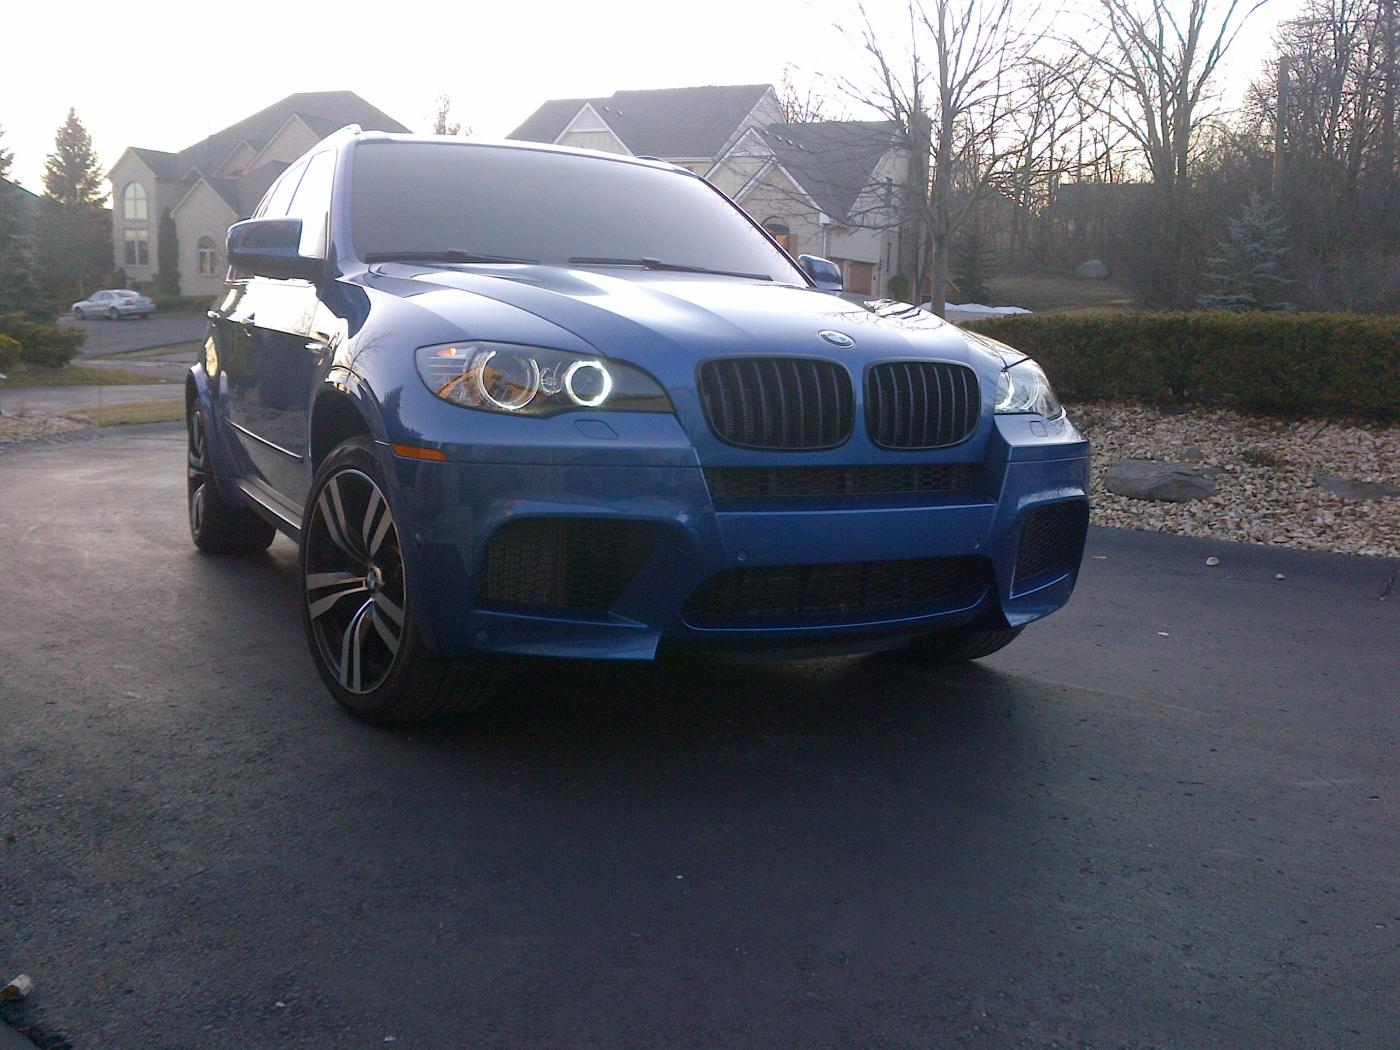 X5m Bmw Performance Black Kidney Grille Awesome Page